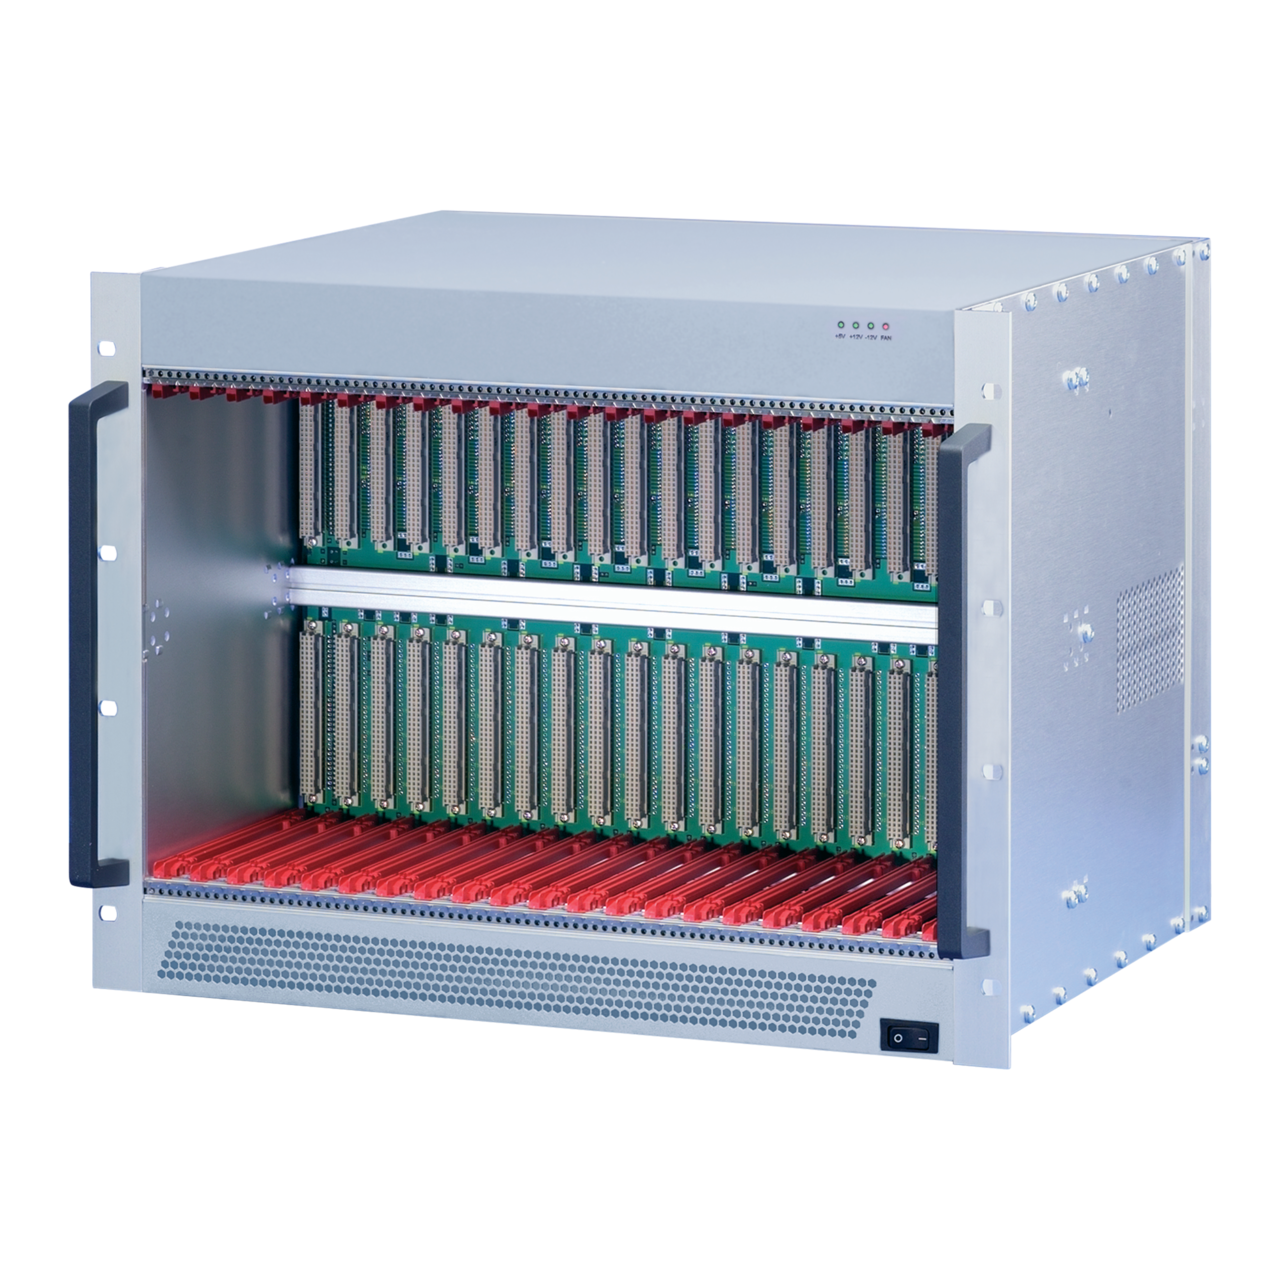 Image for VME-based systems 8 U, 21 slot from nVent SCHROFF | Europe, Middle East, Africa and India